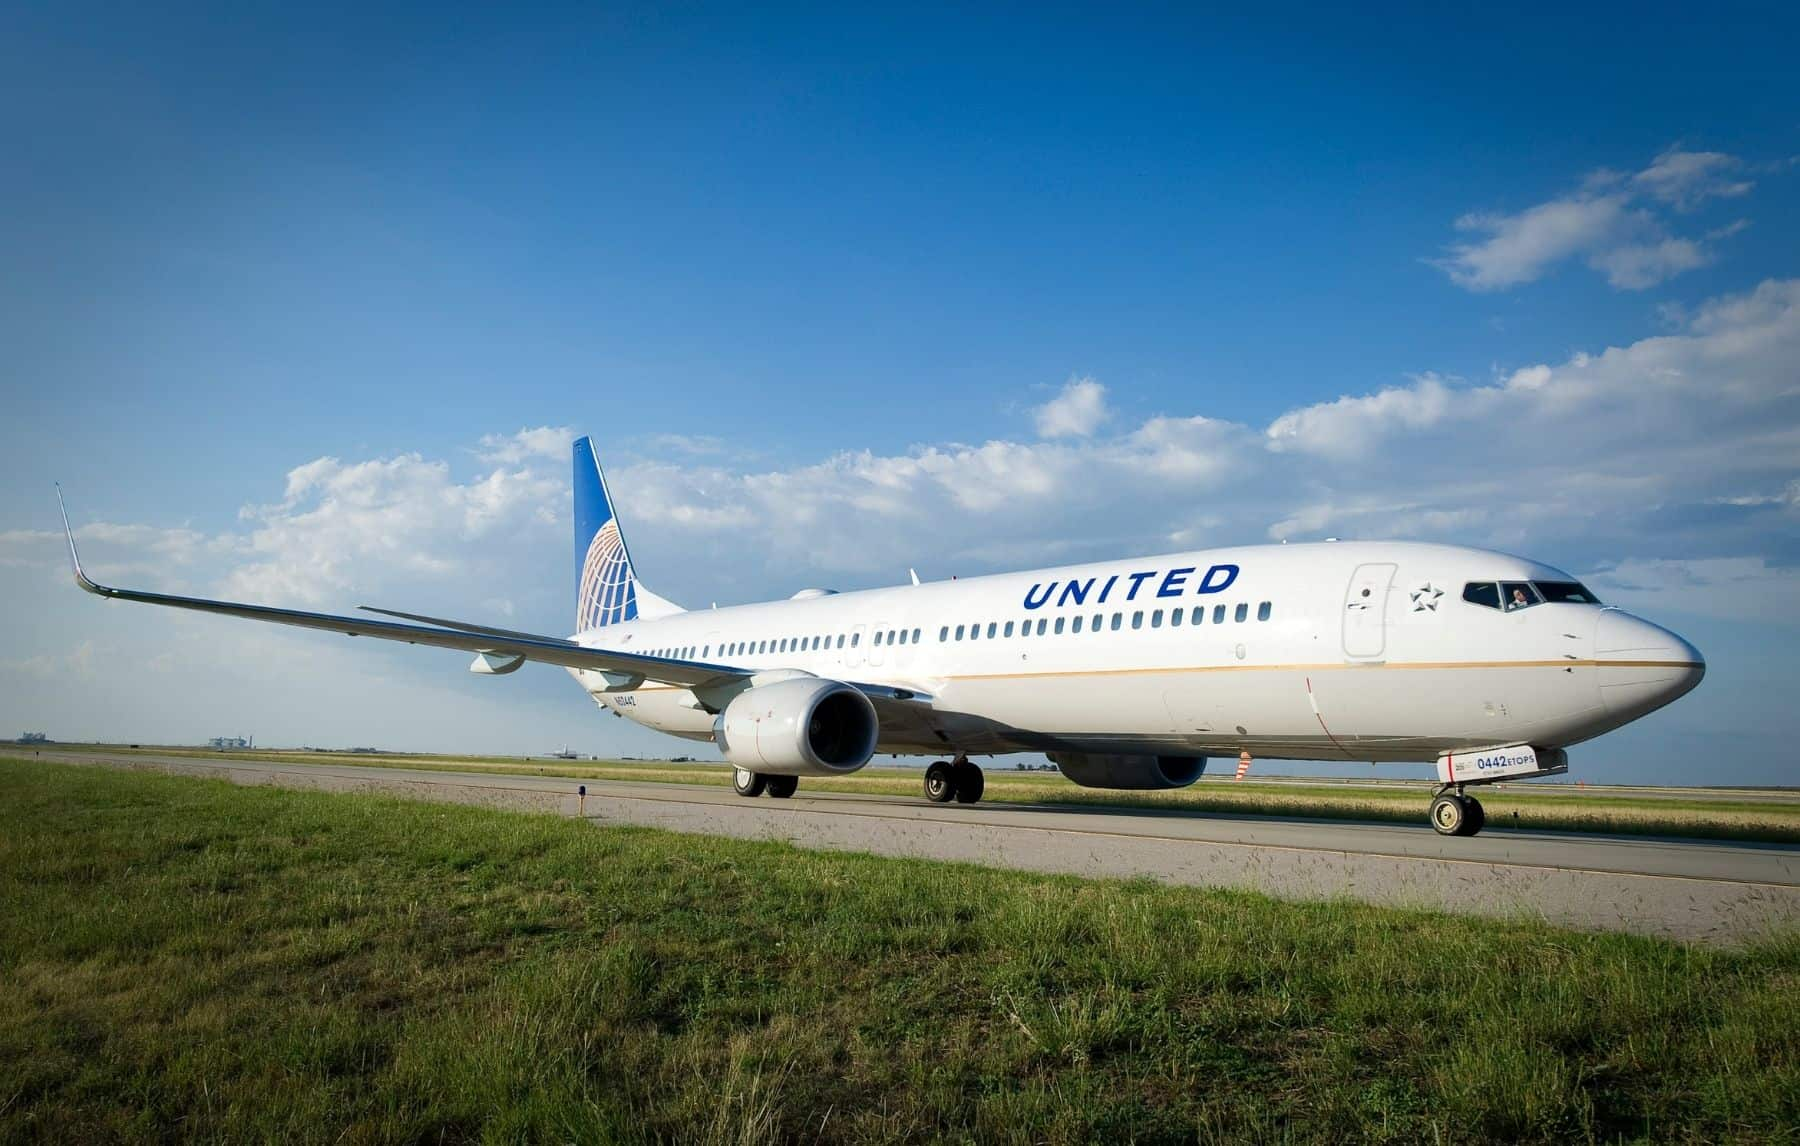 United Airlines Boeing 737